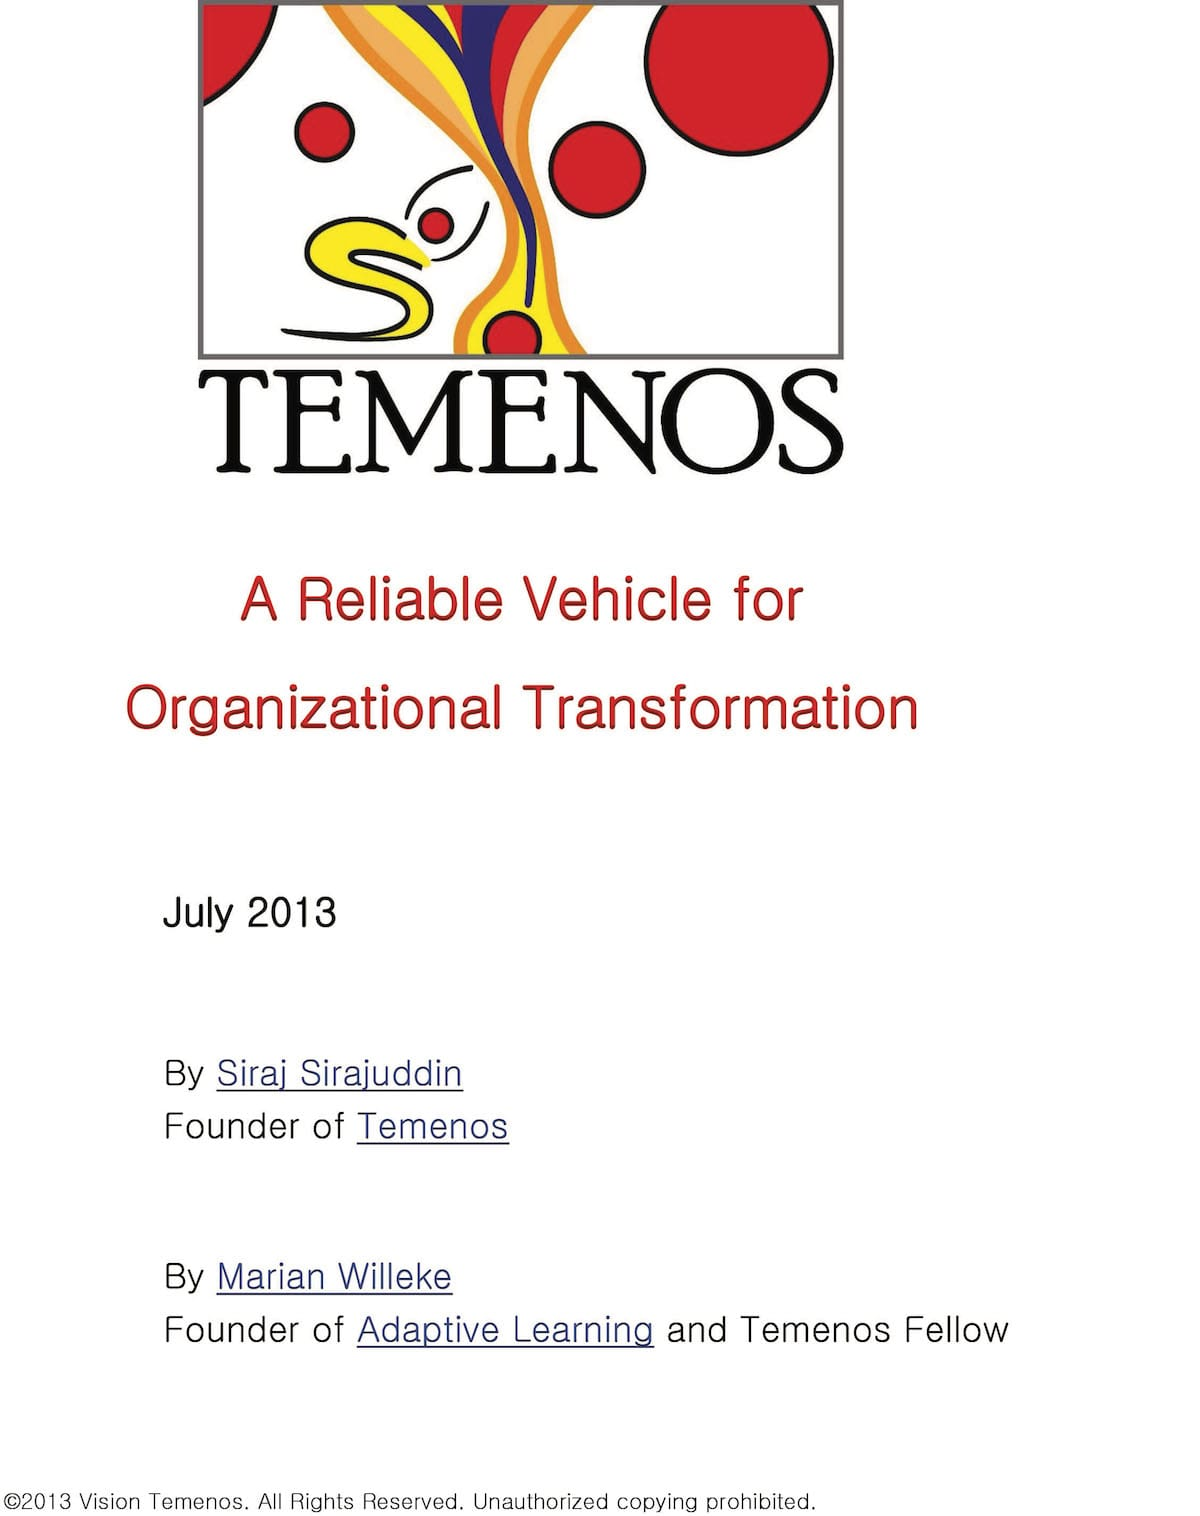 Temenos - A Reliable Vehicle for Organizational Transformation